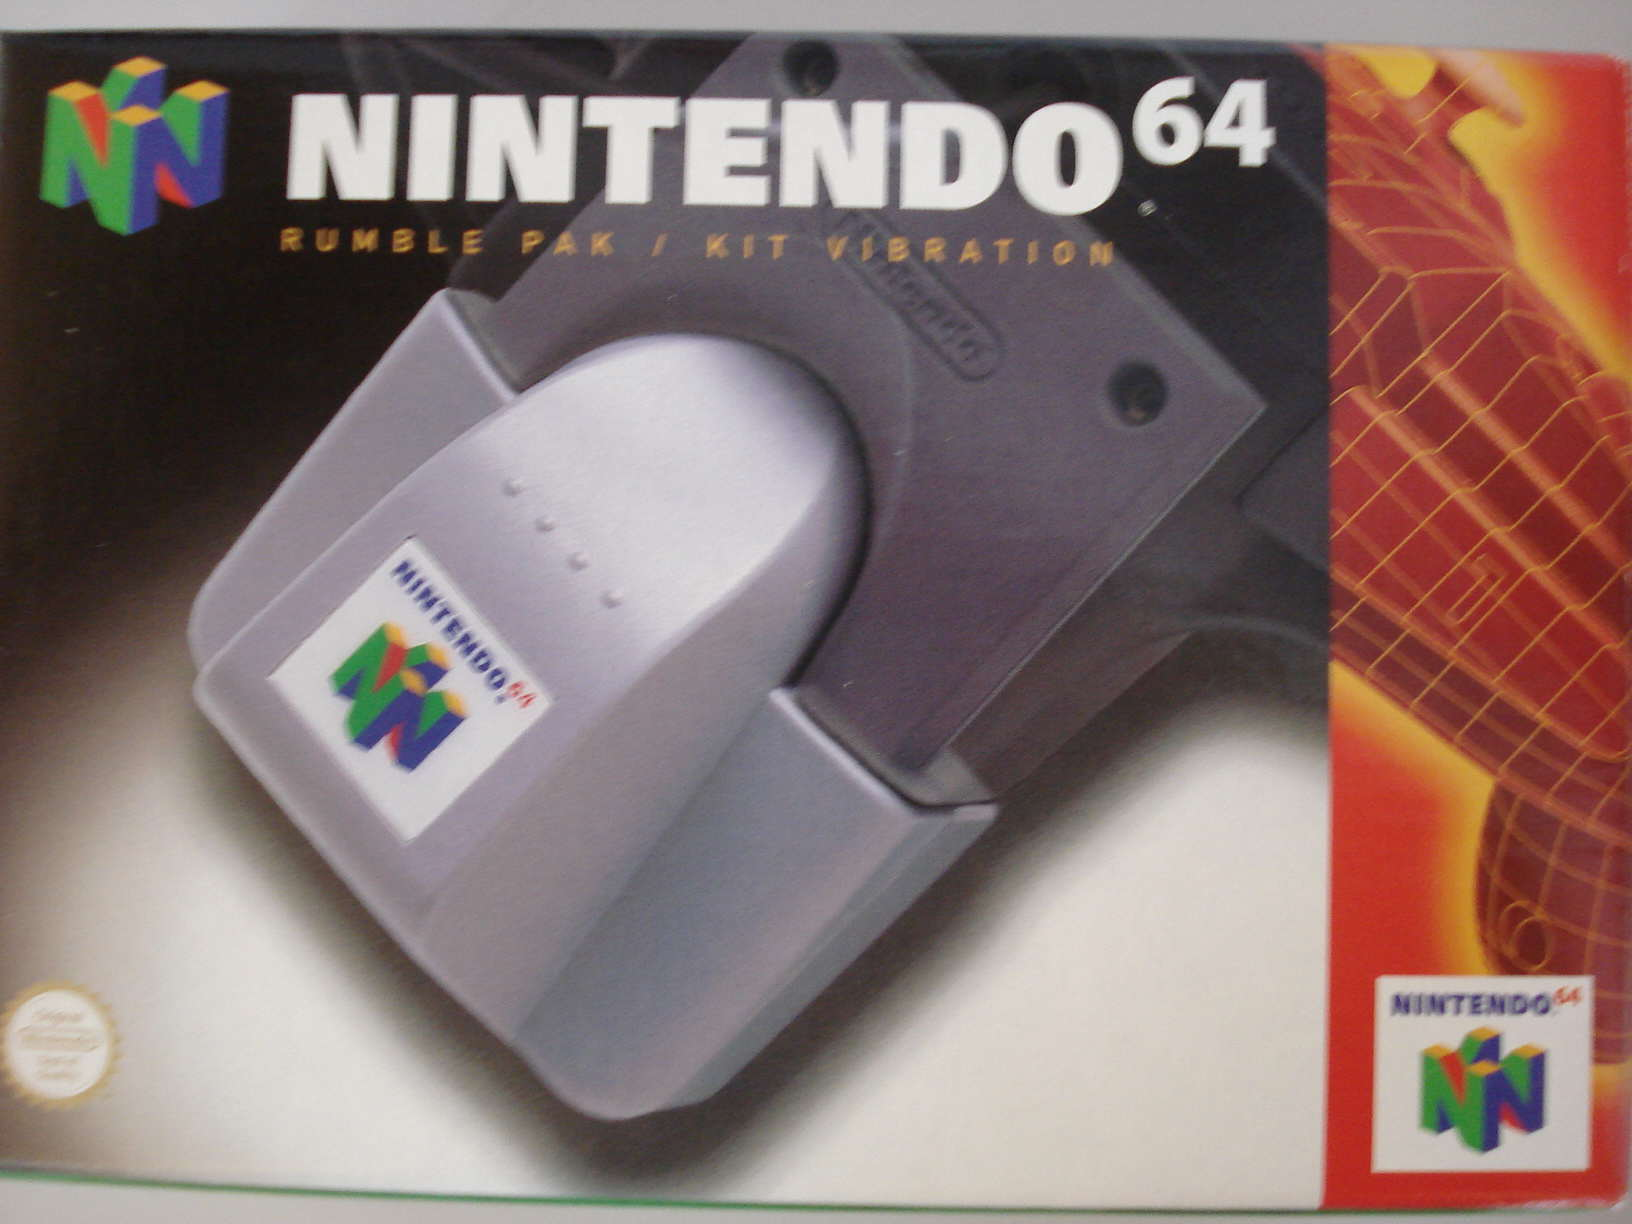 Five Reasons The N64 Was Awesome N64 rumblepack box